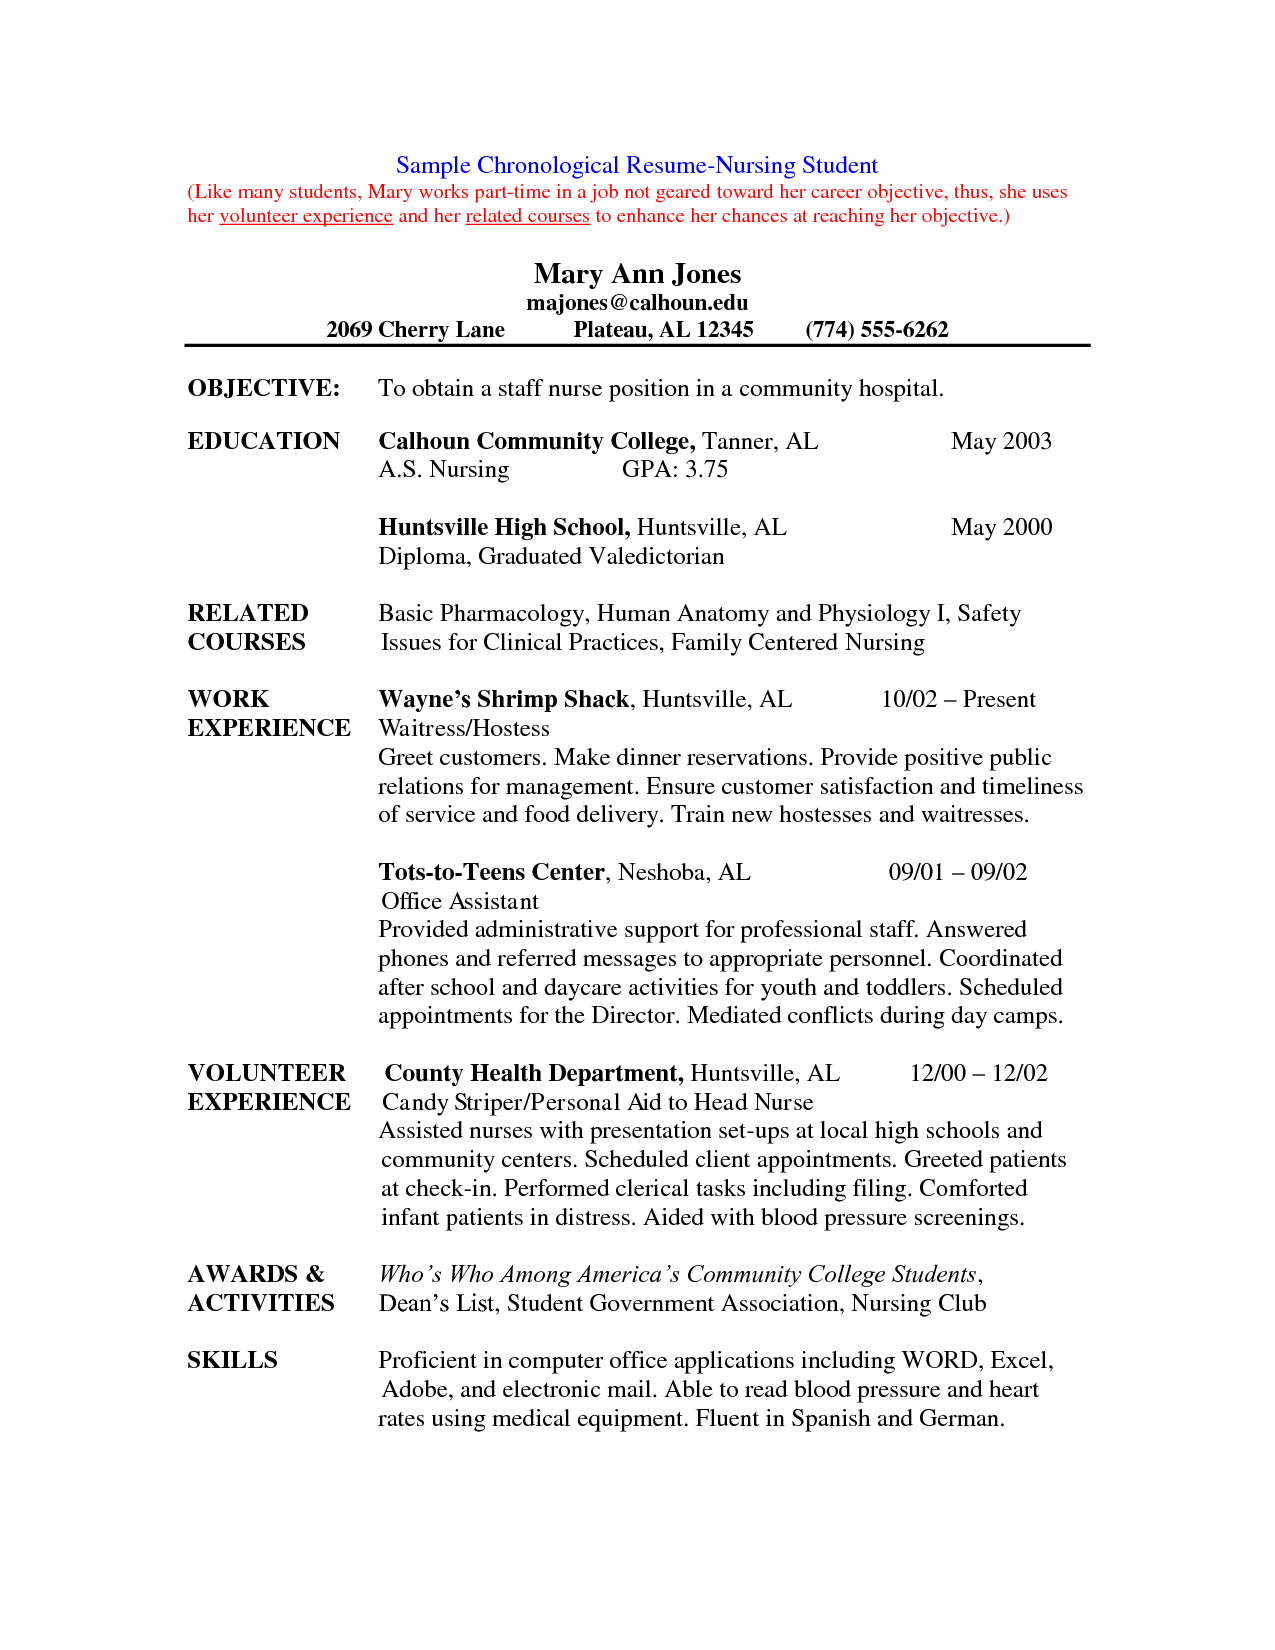 New Registered Nurse Resume Sample Sample Of New Grad Nursing Cover Letters  For Nursing Job Application  Nursing New Grad Resume